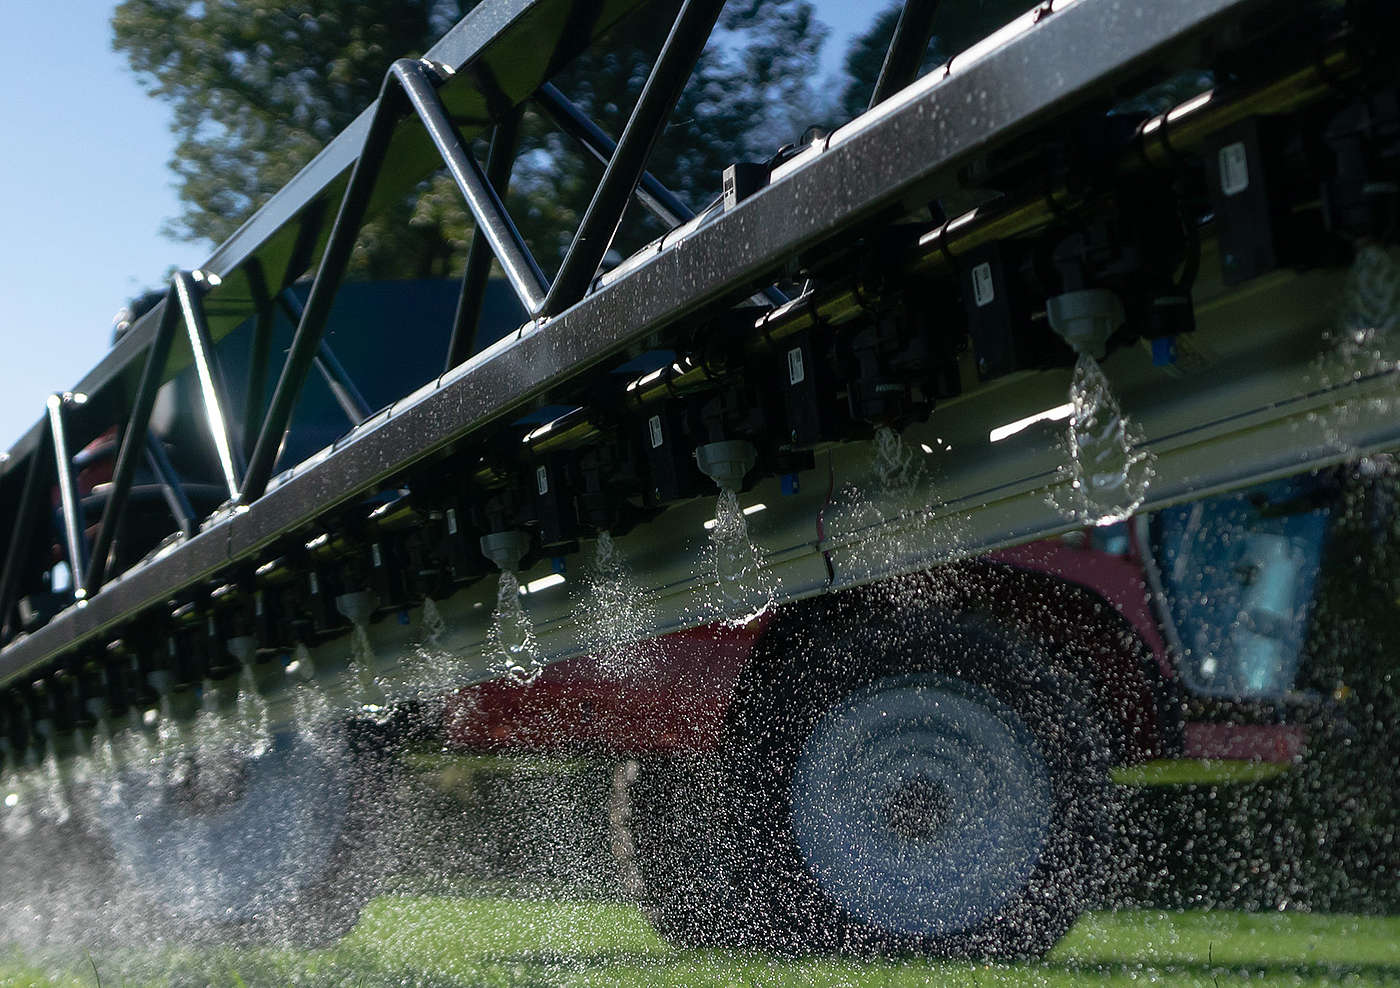 HORSCH product image: The PrecisionSpray system sprays with a regular frequency of 20 Hz.